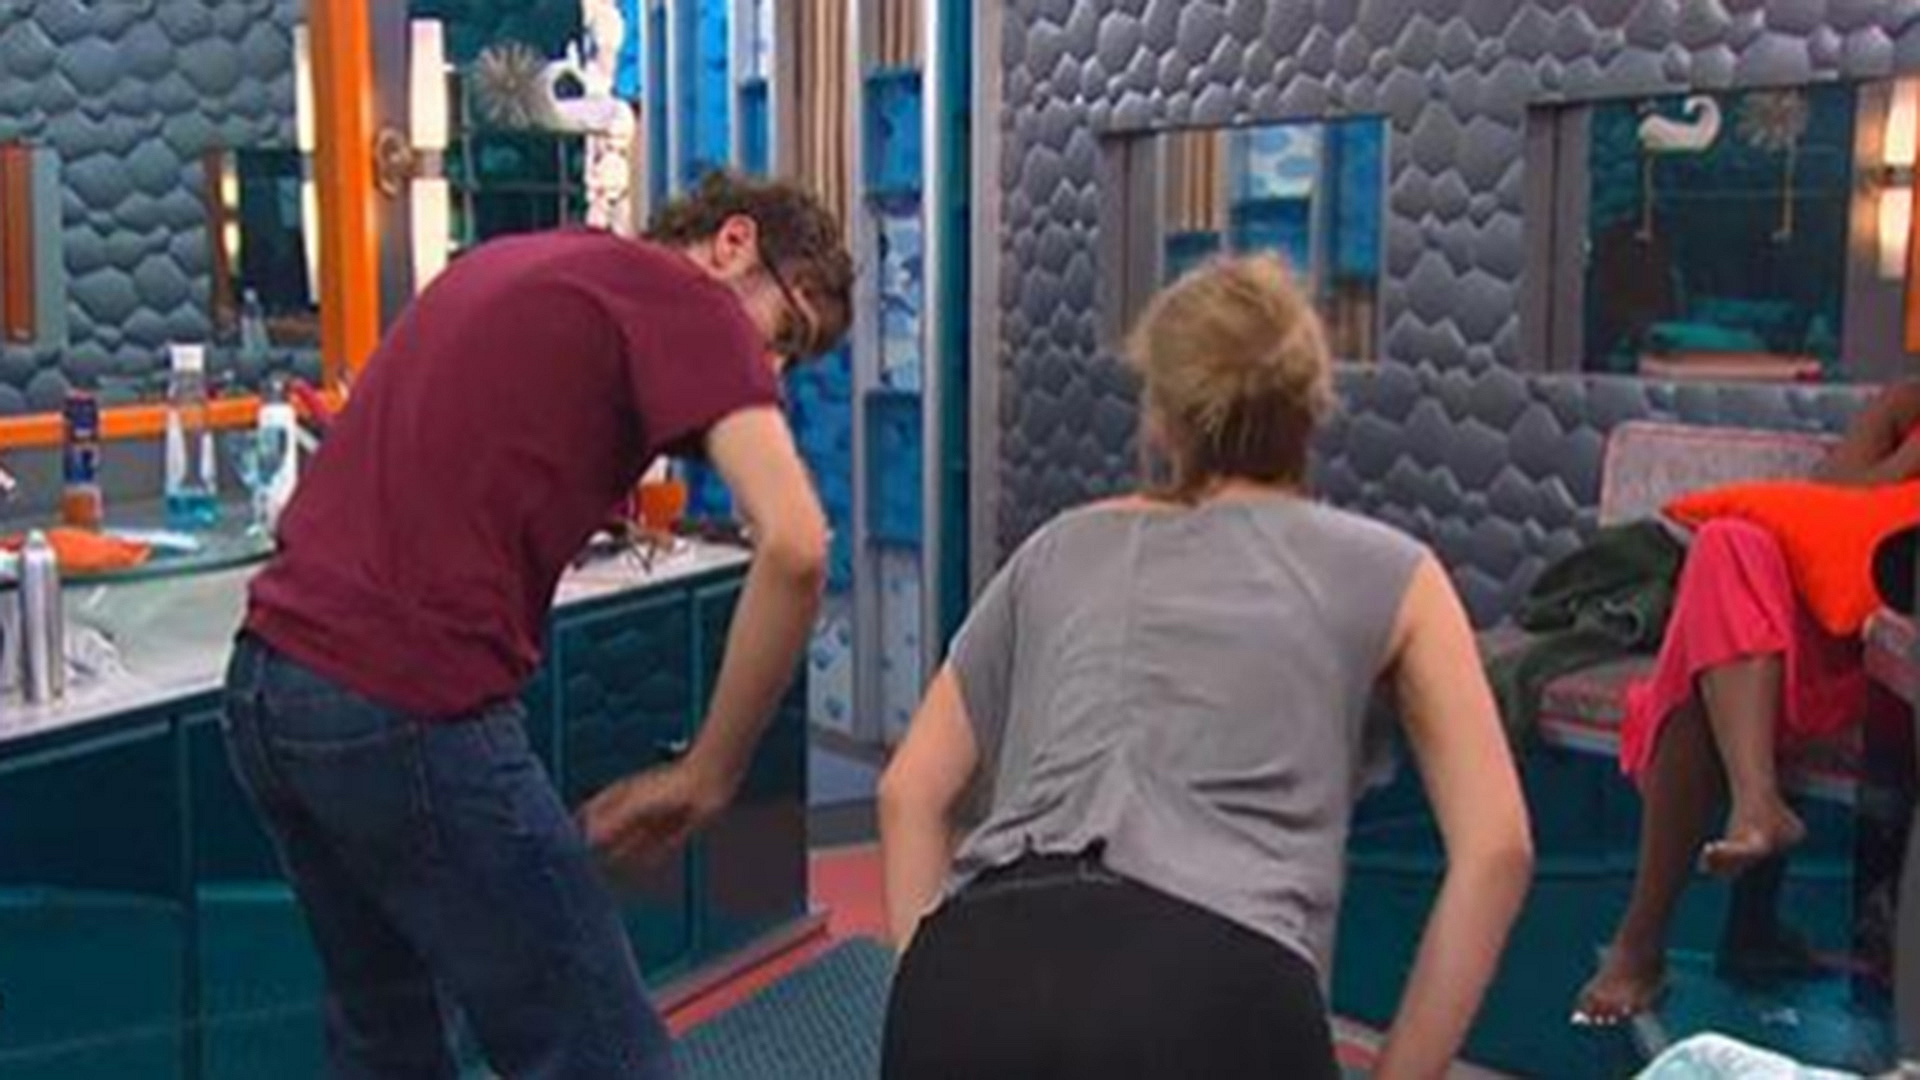 12. Meg teaches Steve how to twerk.